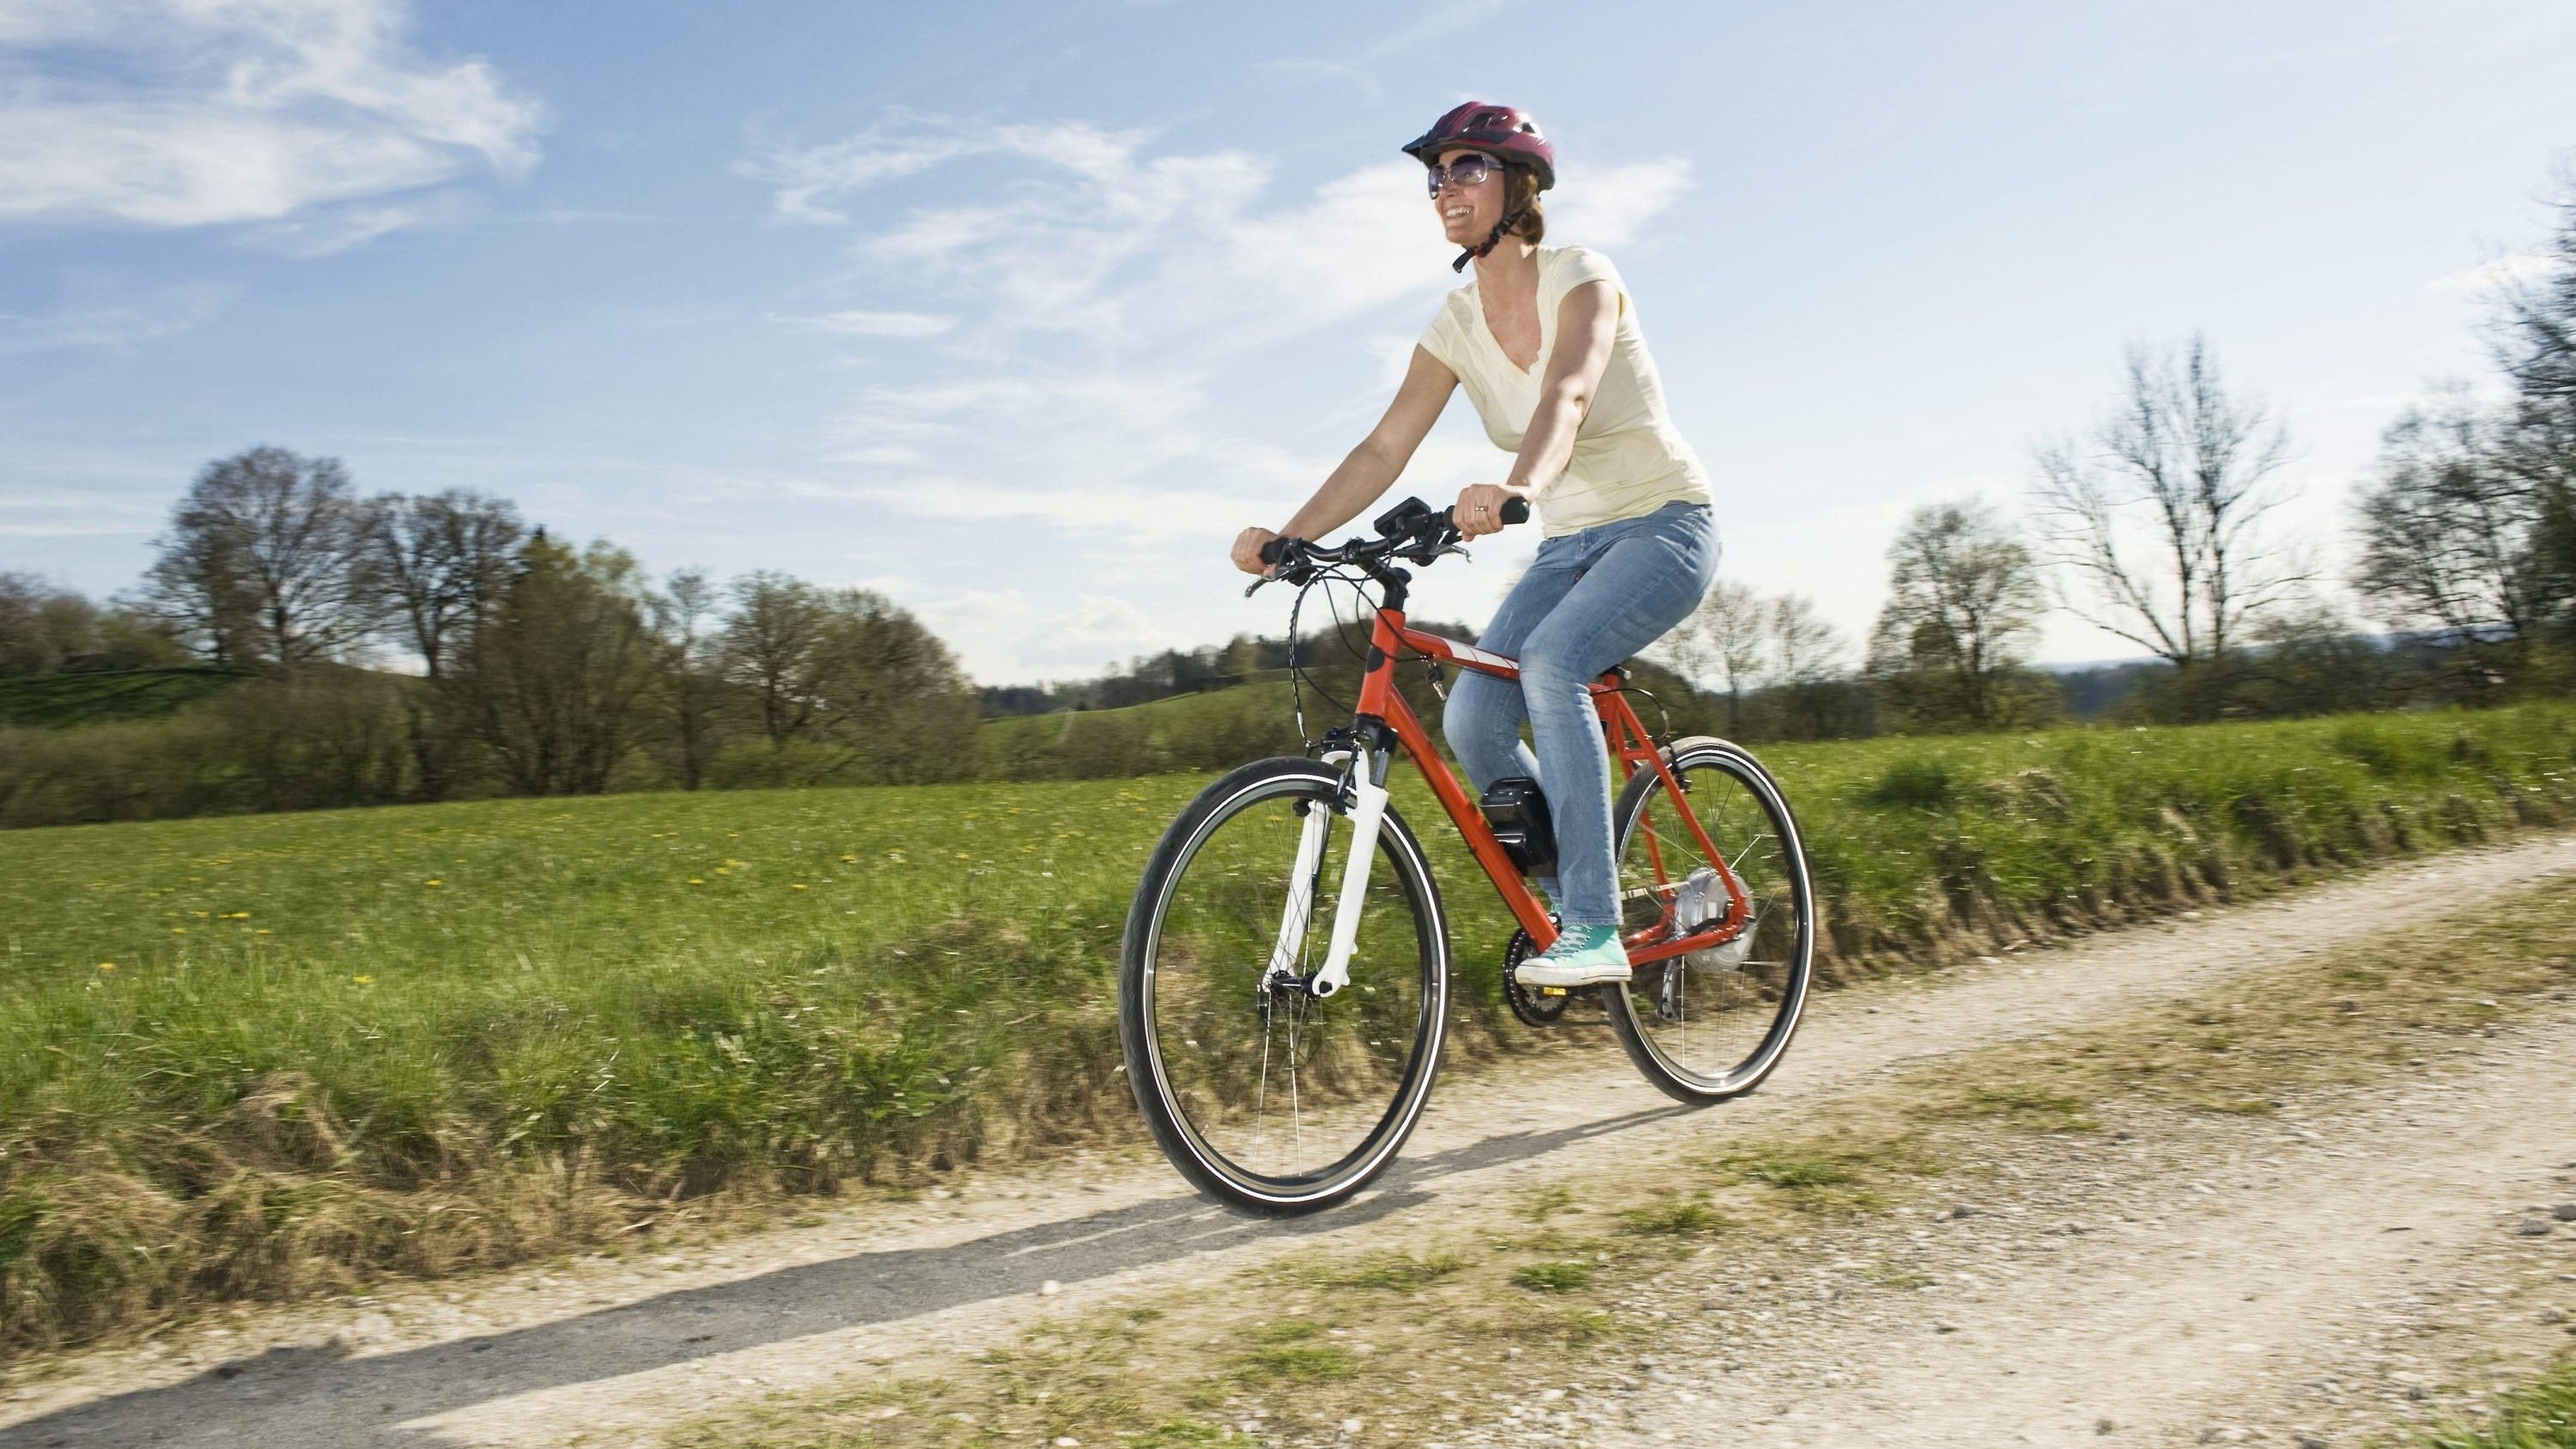 woman on ebike riding trail